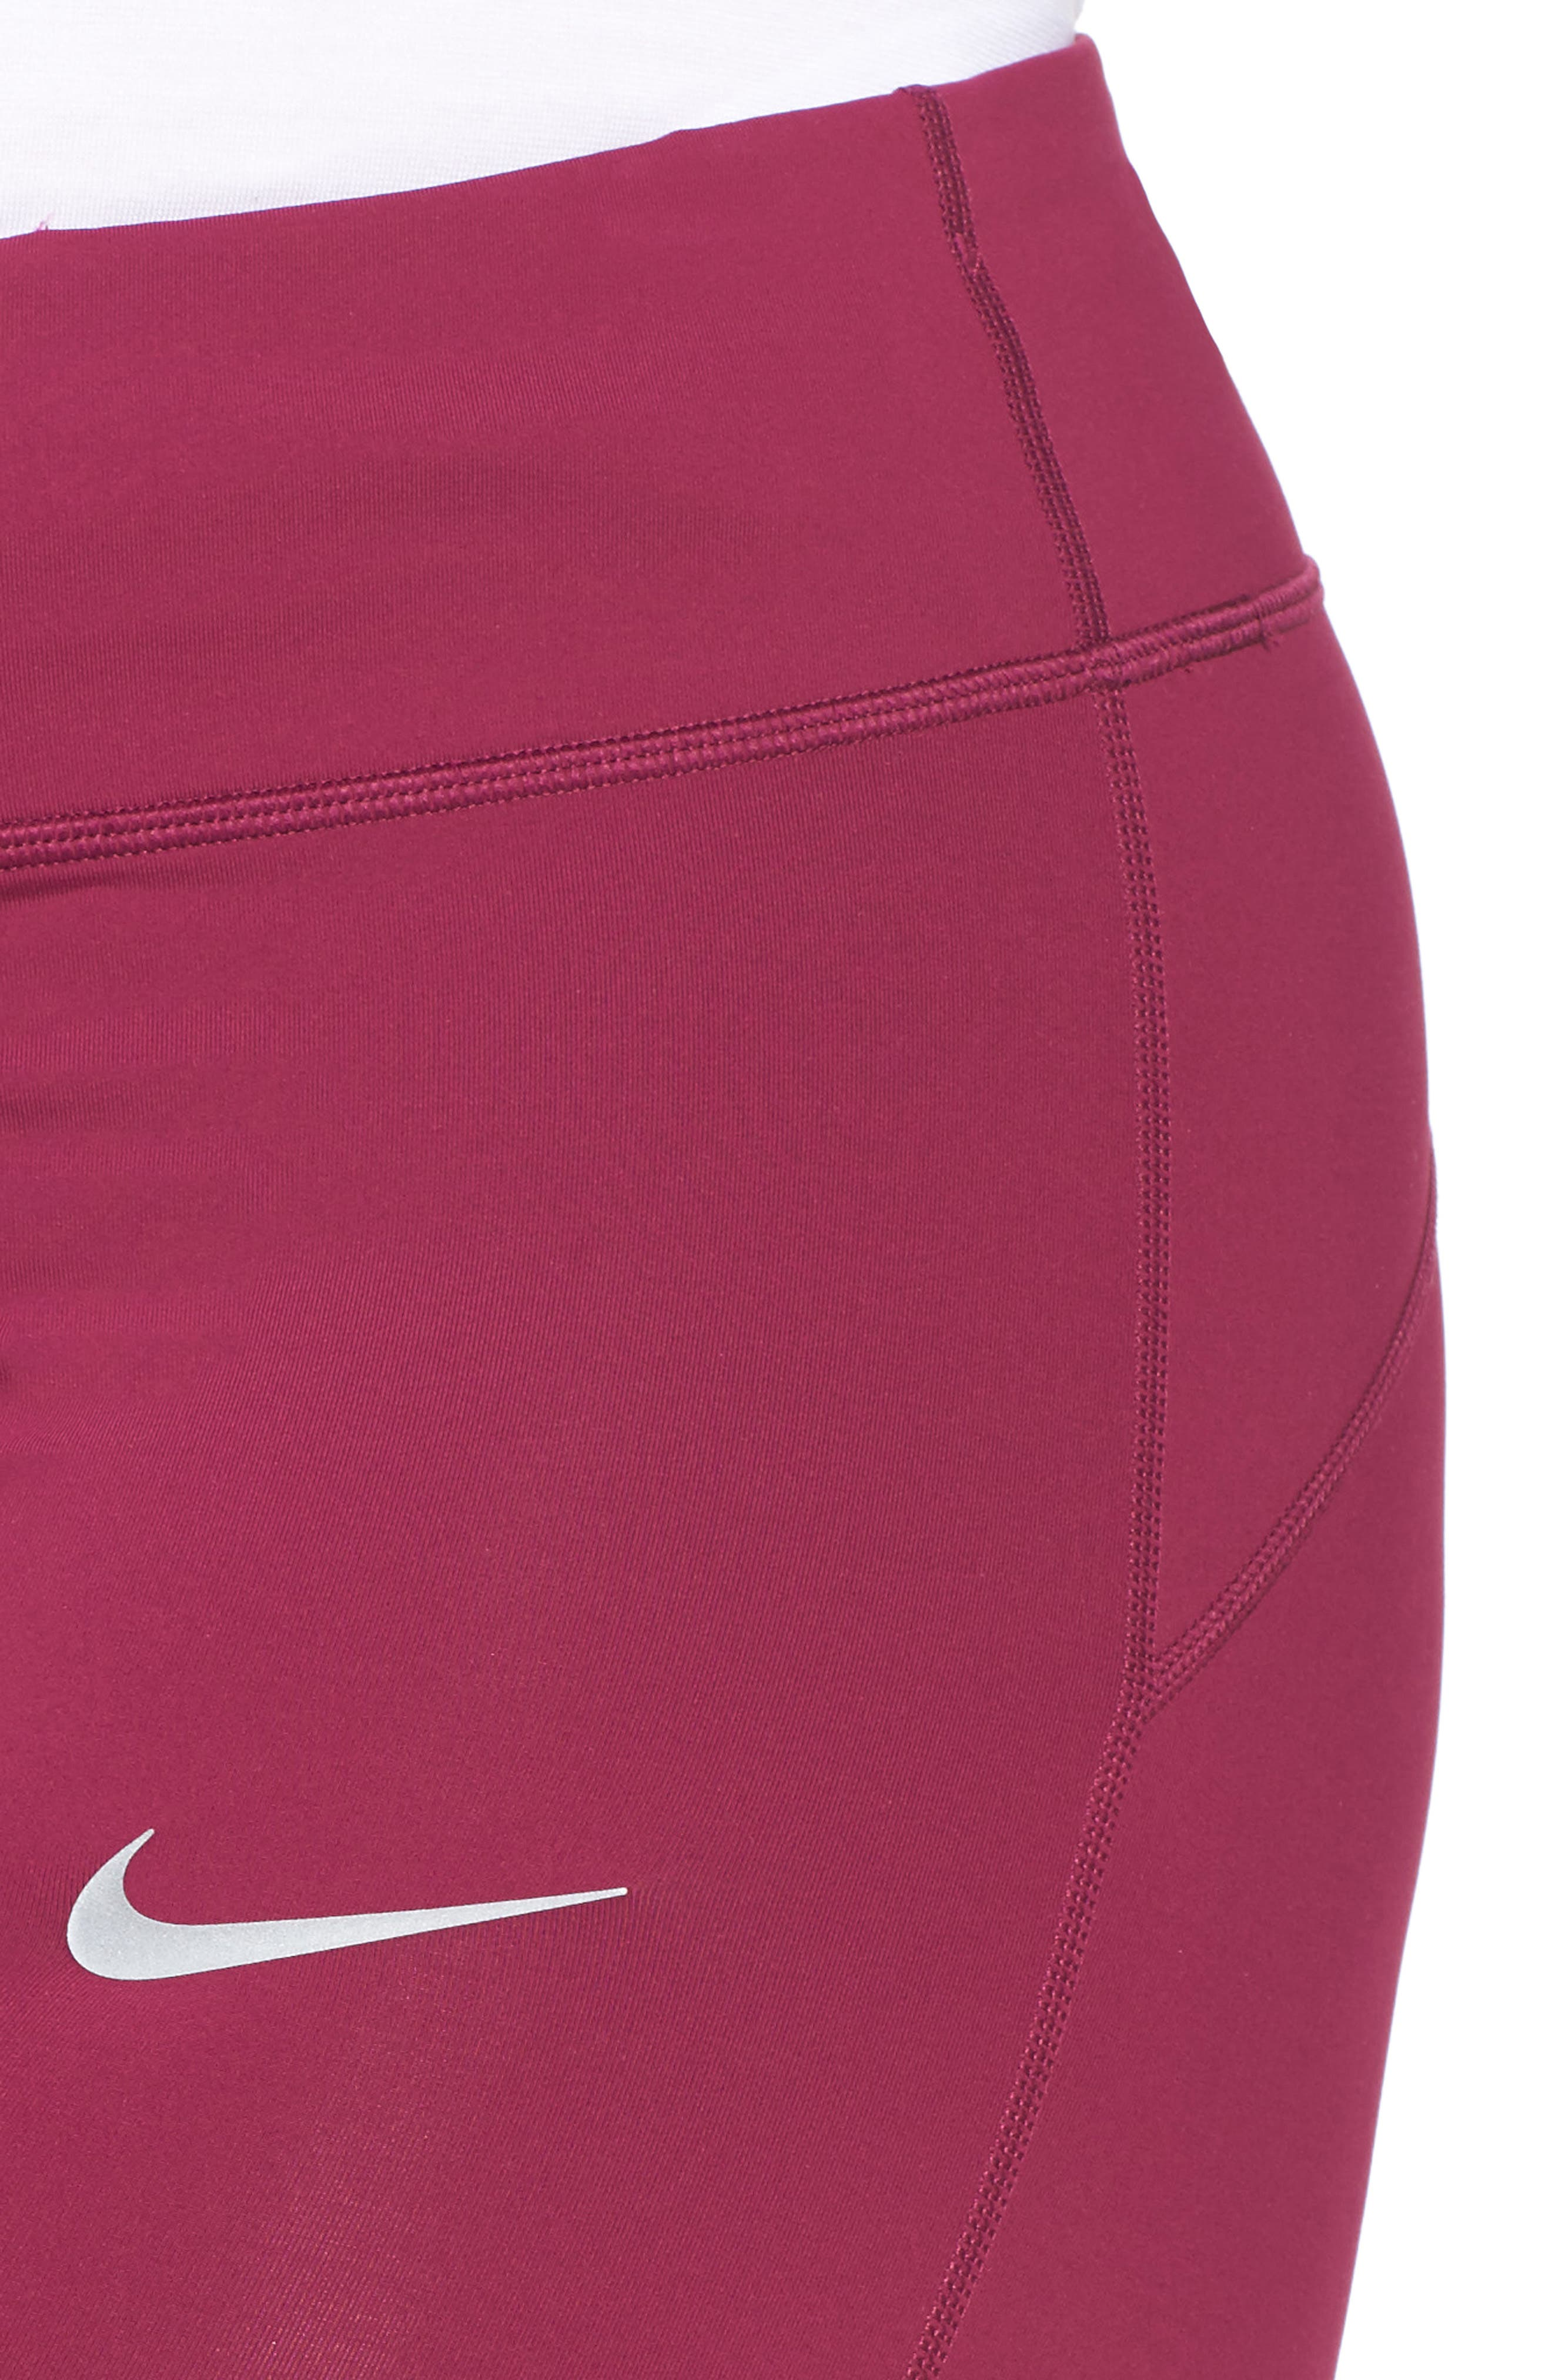 Power Epic Crop Run Tights,                             Alternate thumbnail 4, color,                             True Berry